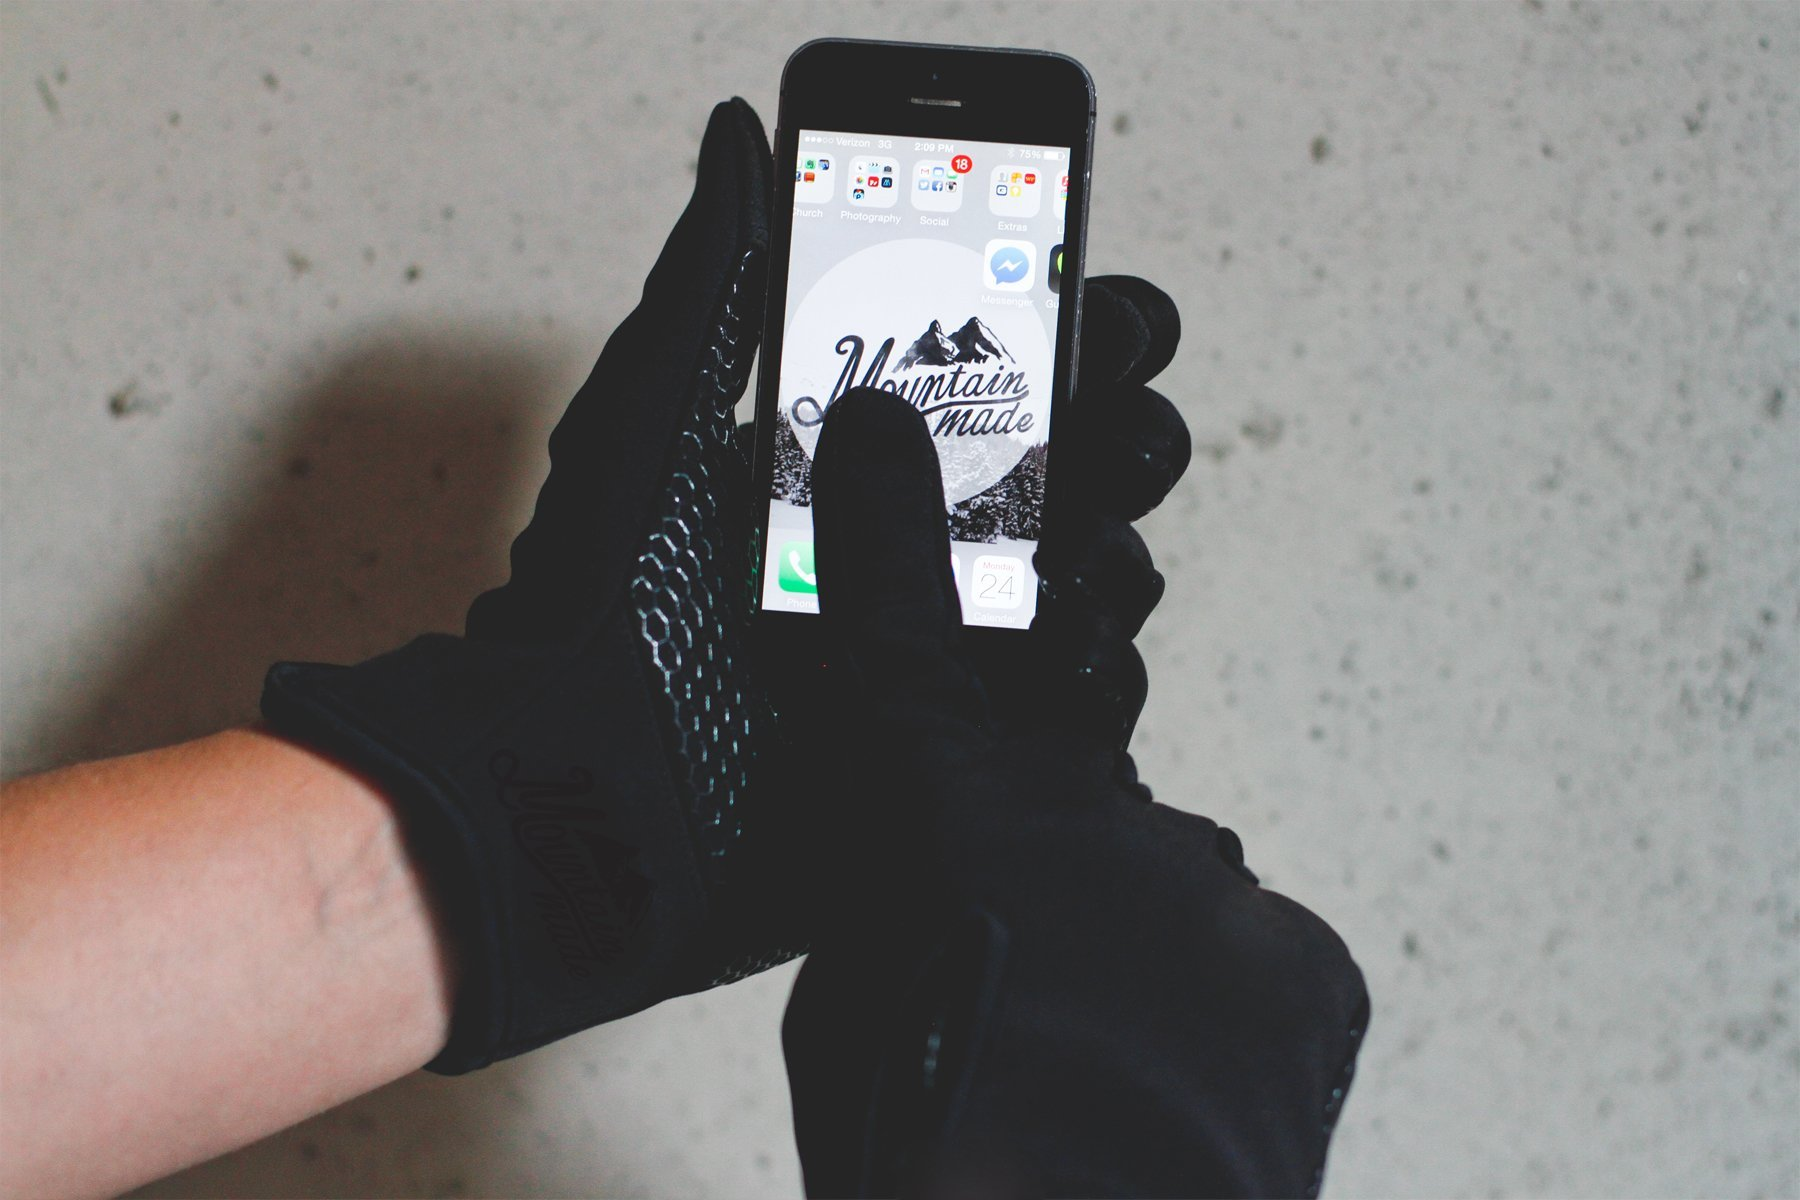 Mountain Made Cold Weather Gloves for Men and Women 2.0 with NEW UPGRADED ZIPPPERS,black,large by Mountain Made (Image #6)